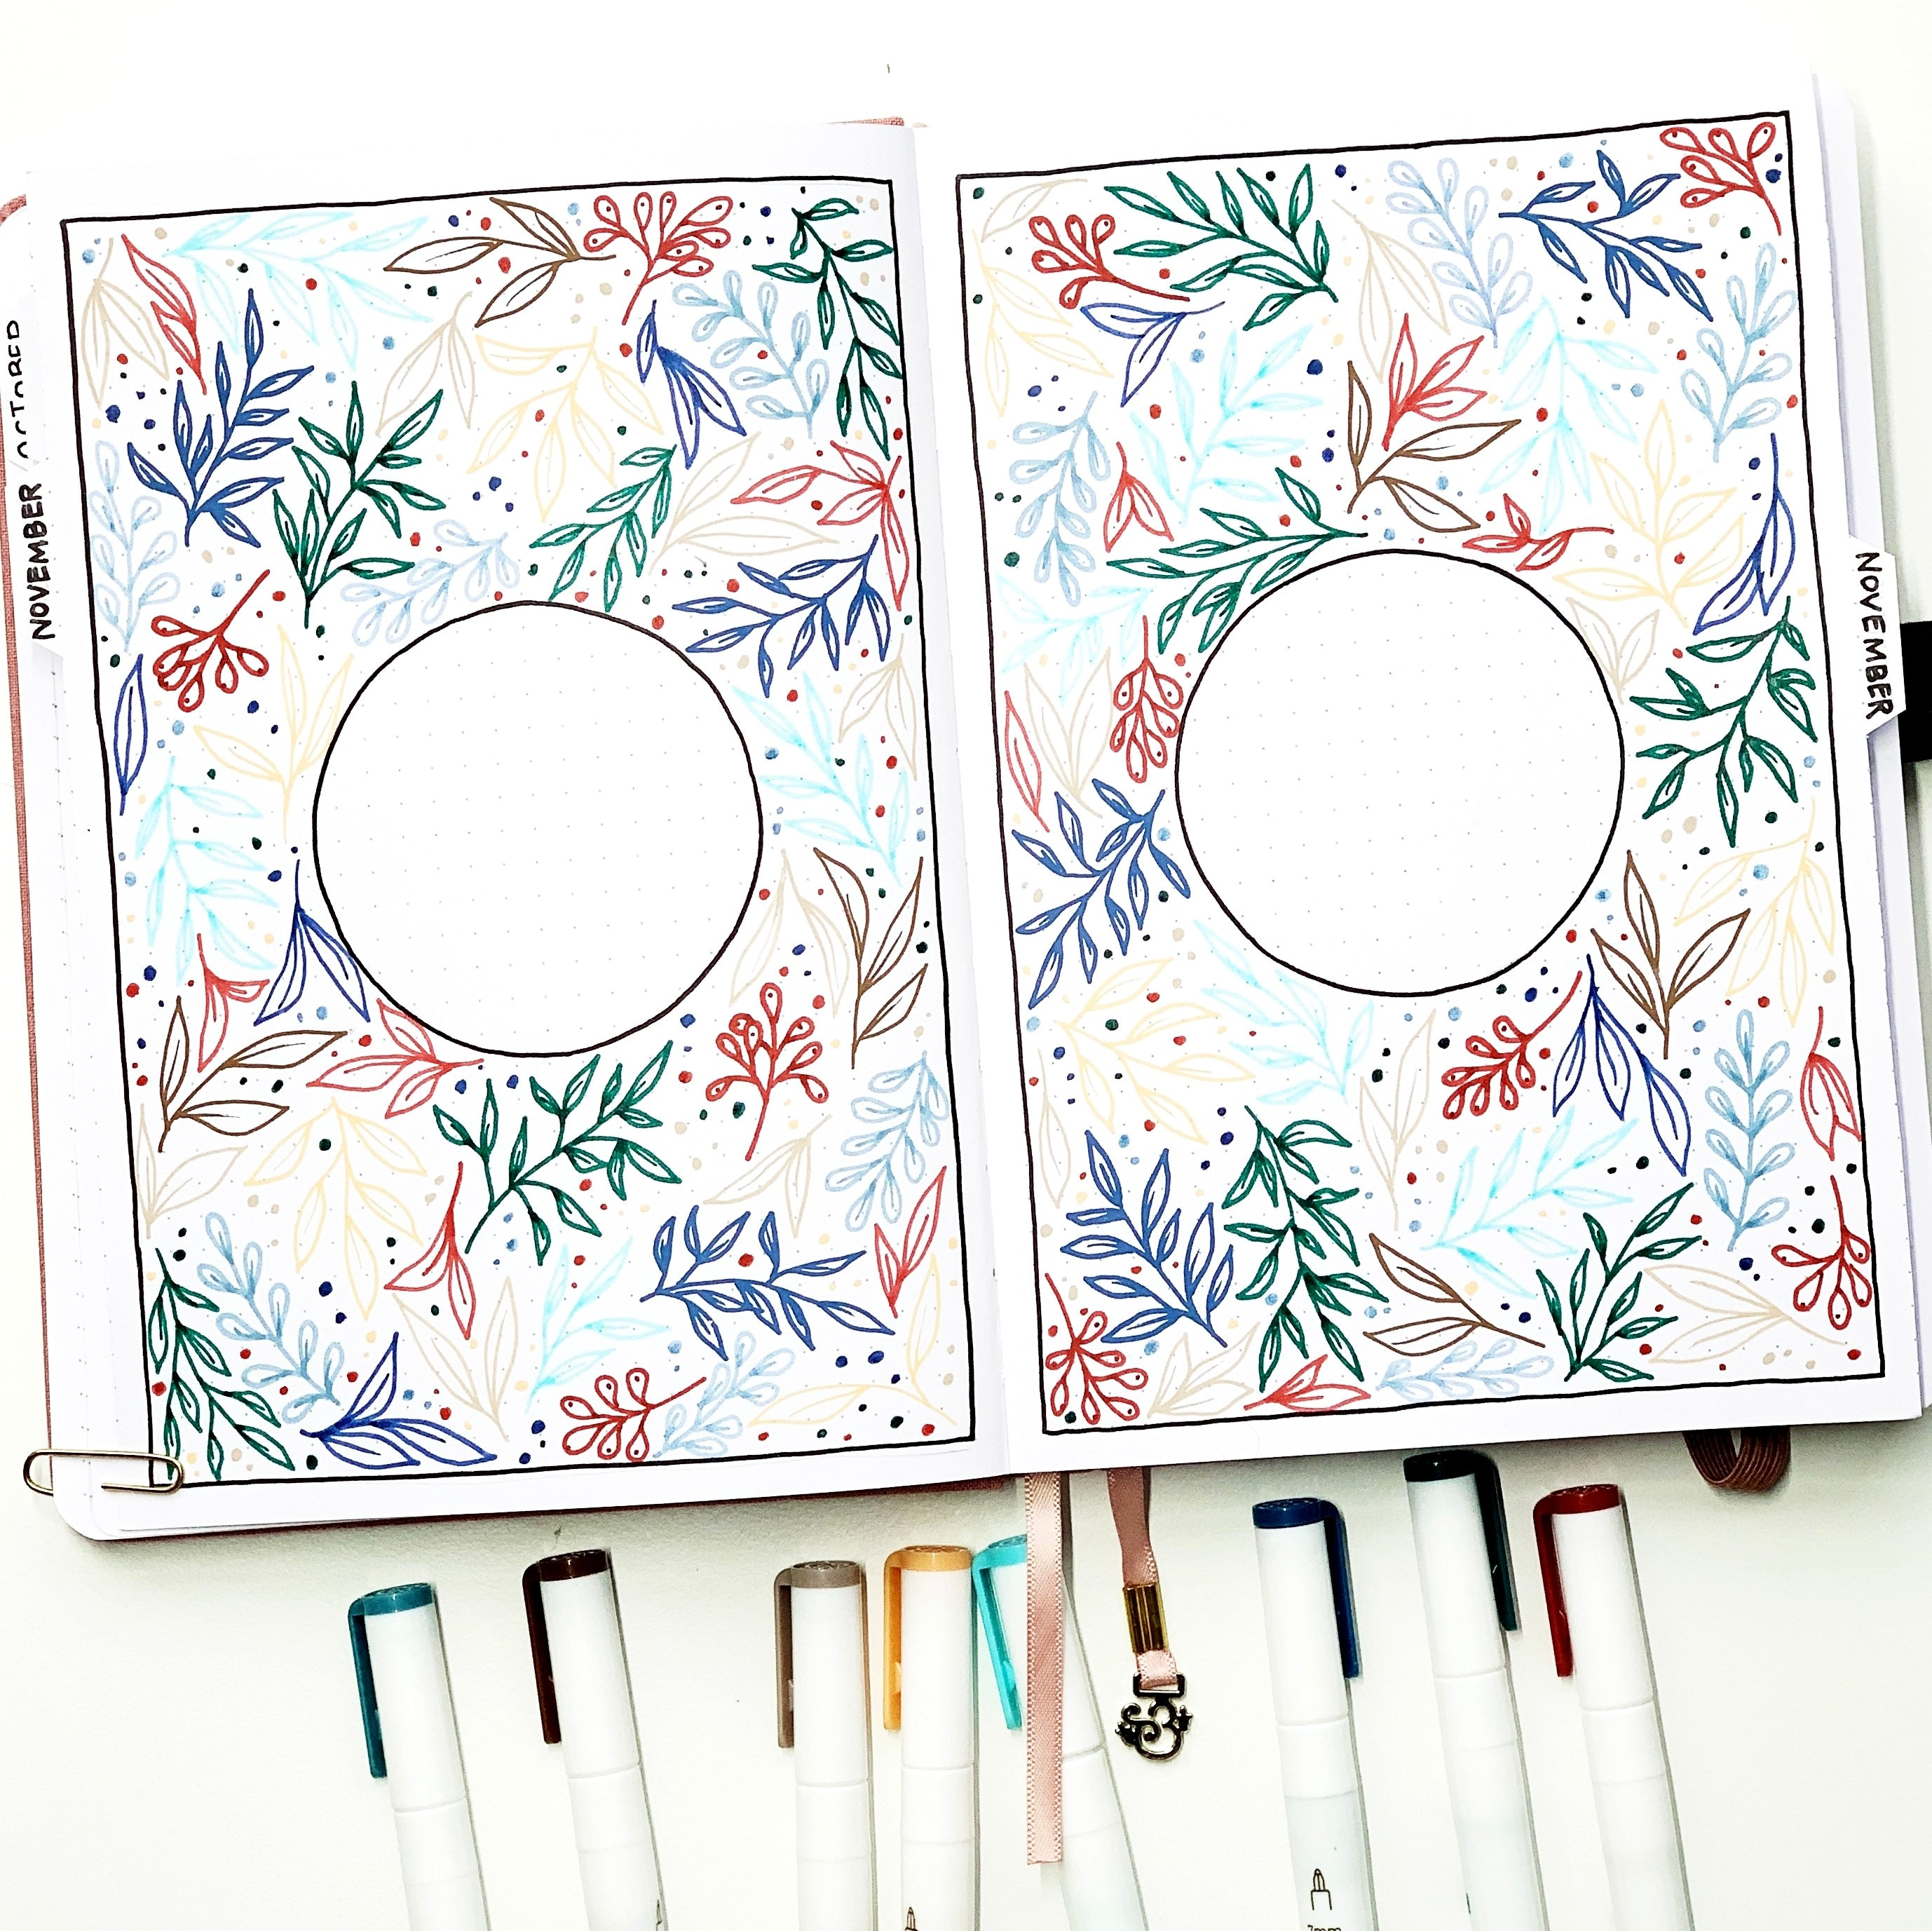 Learn how to create this fall leaf cover page in your bullet journal with Adrienne from @studio80design!